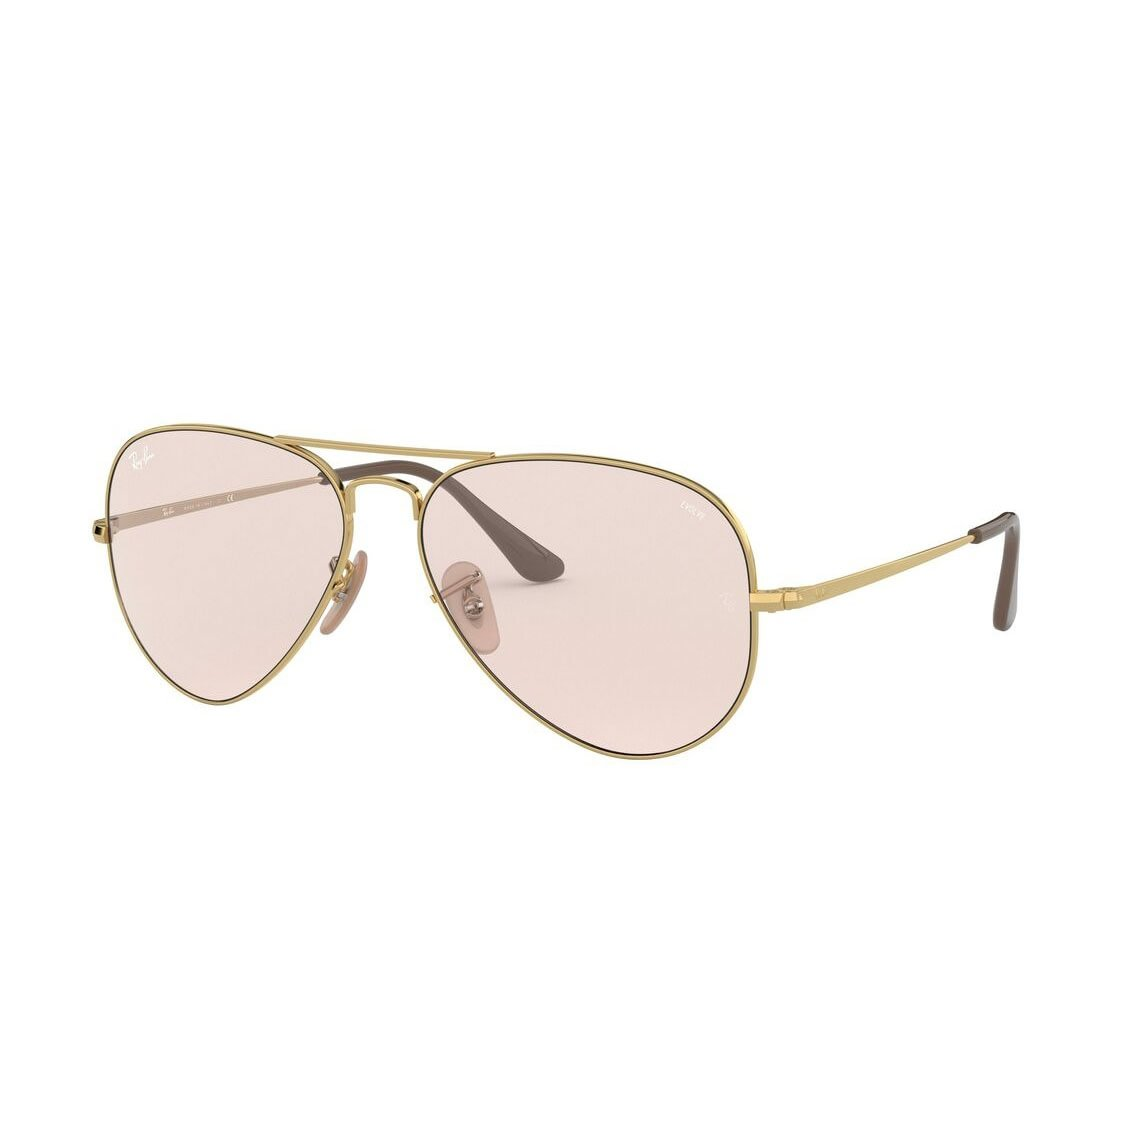 Ray-Ban Aviator Metal II RB3689 Solid Evolve 001/T5 5514